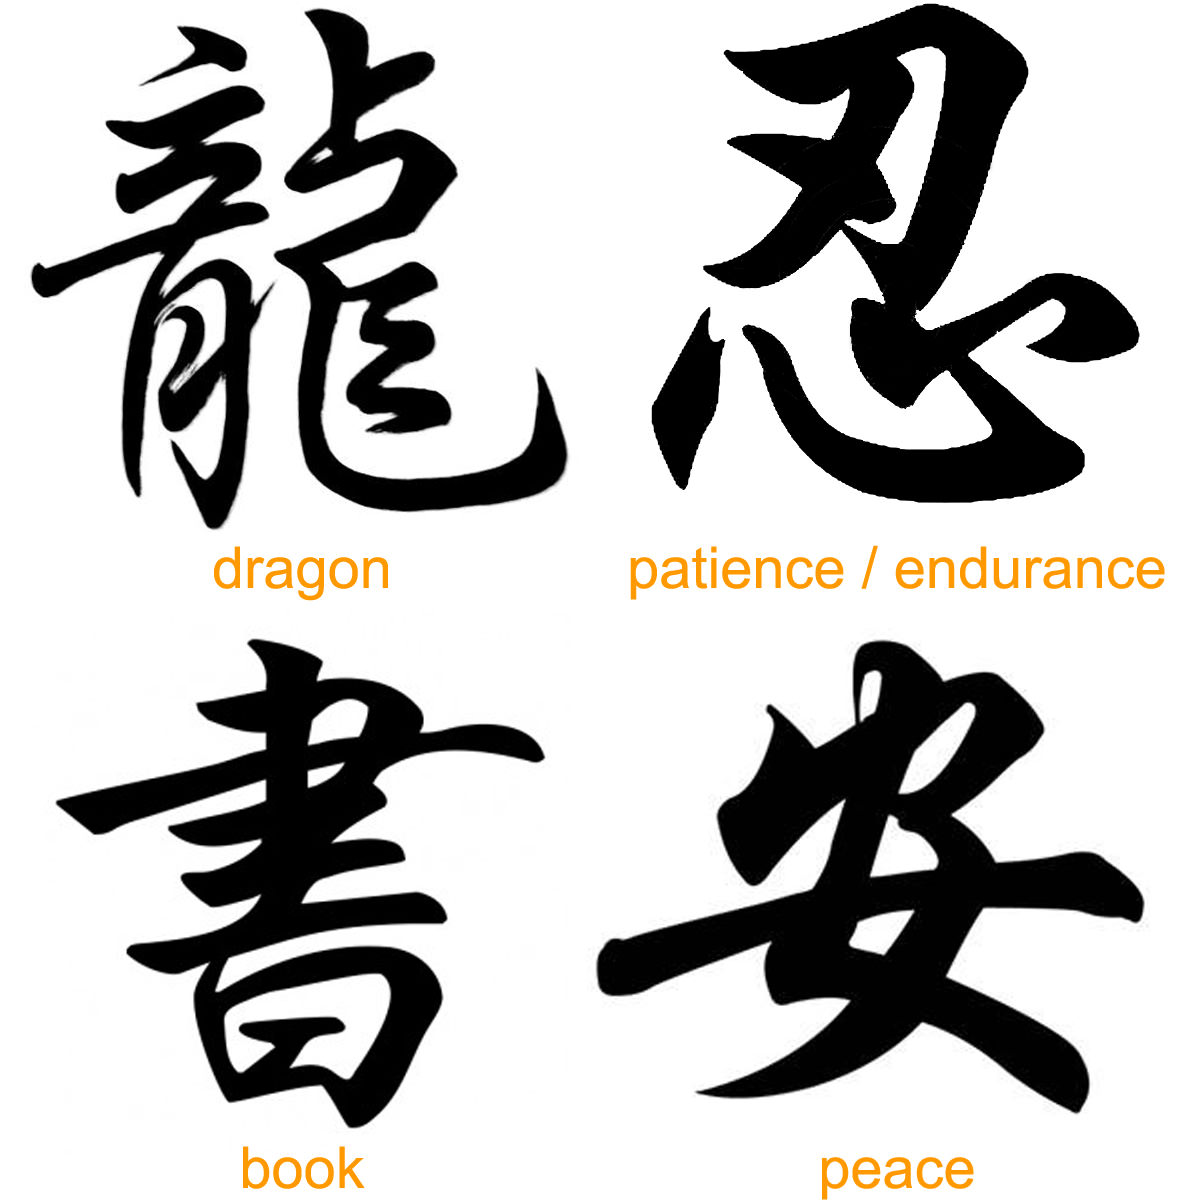 Best Kanji Tattoo Designs Our Top 10: 100 Beautiful Chinese Japanese Kanji Tattoo Symbols & Designs